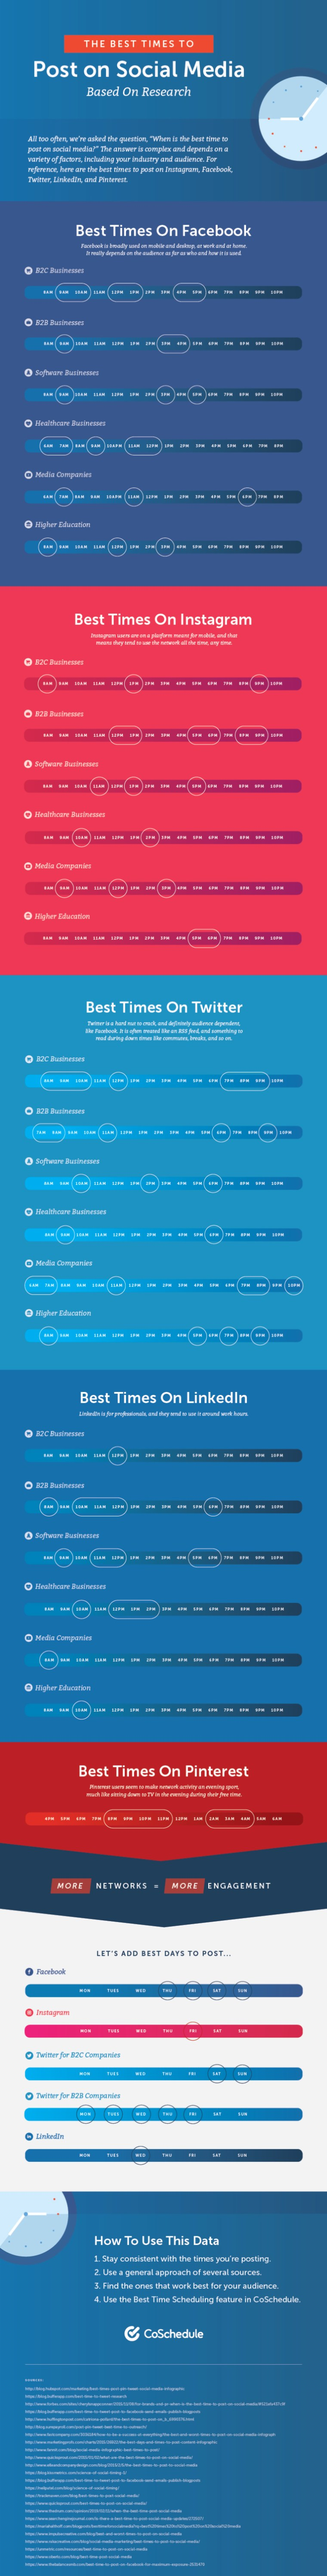 Best posting times infographic